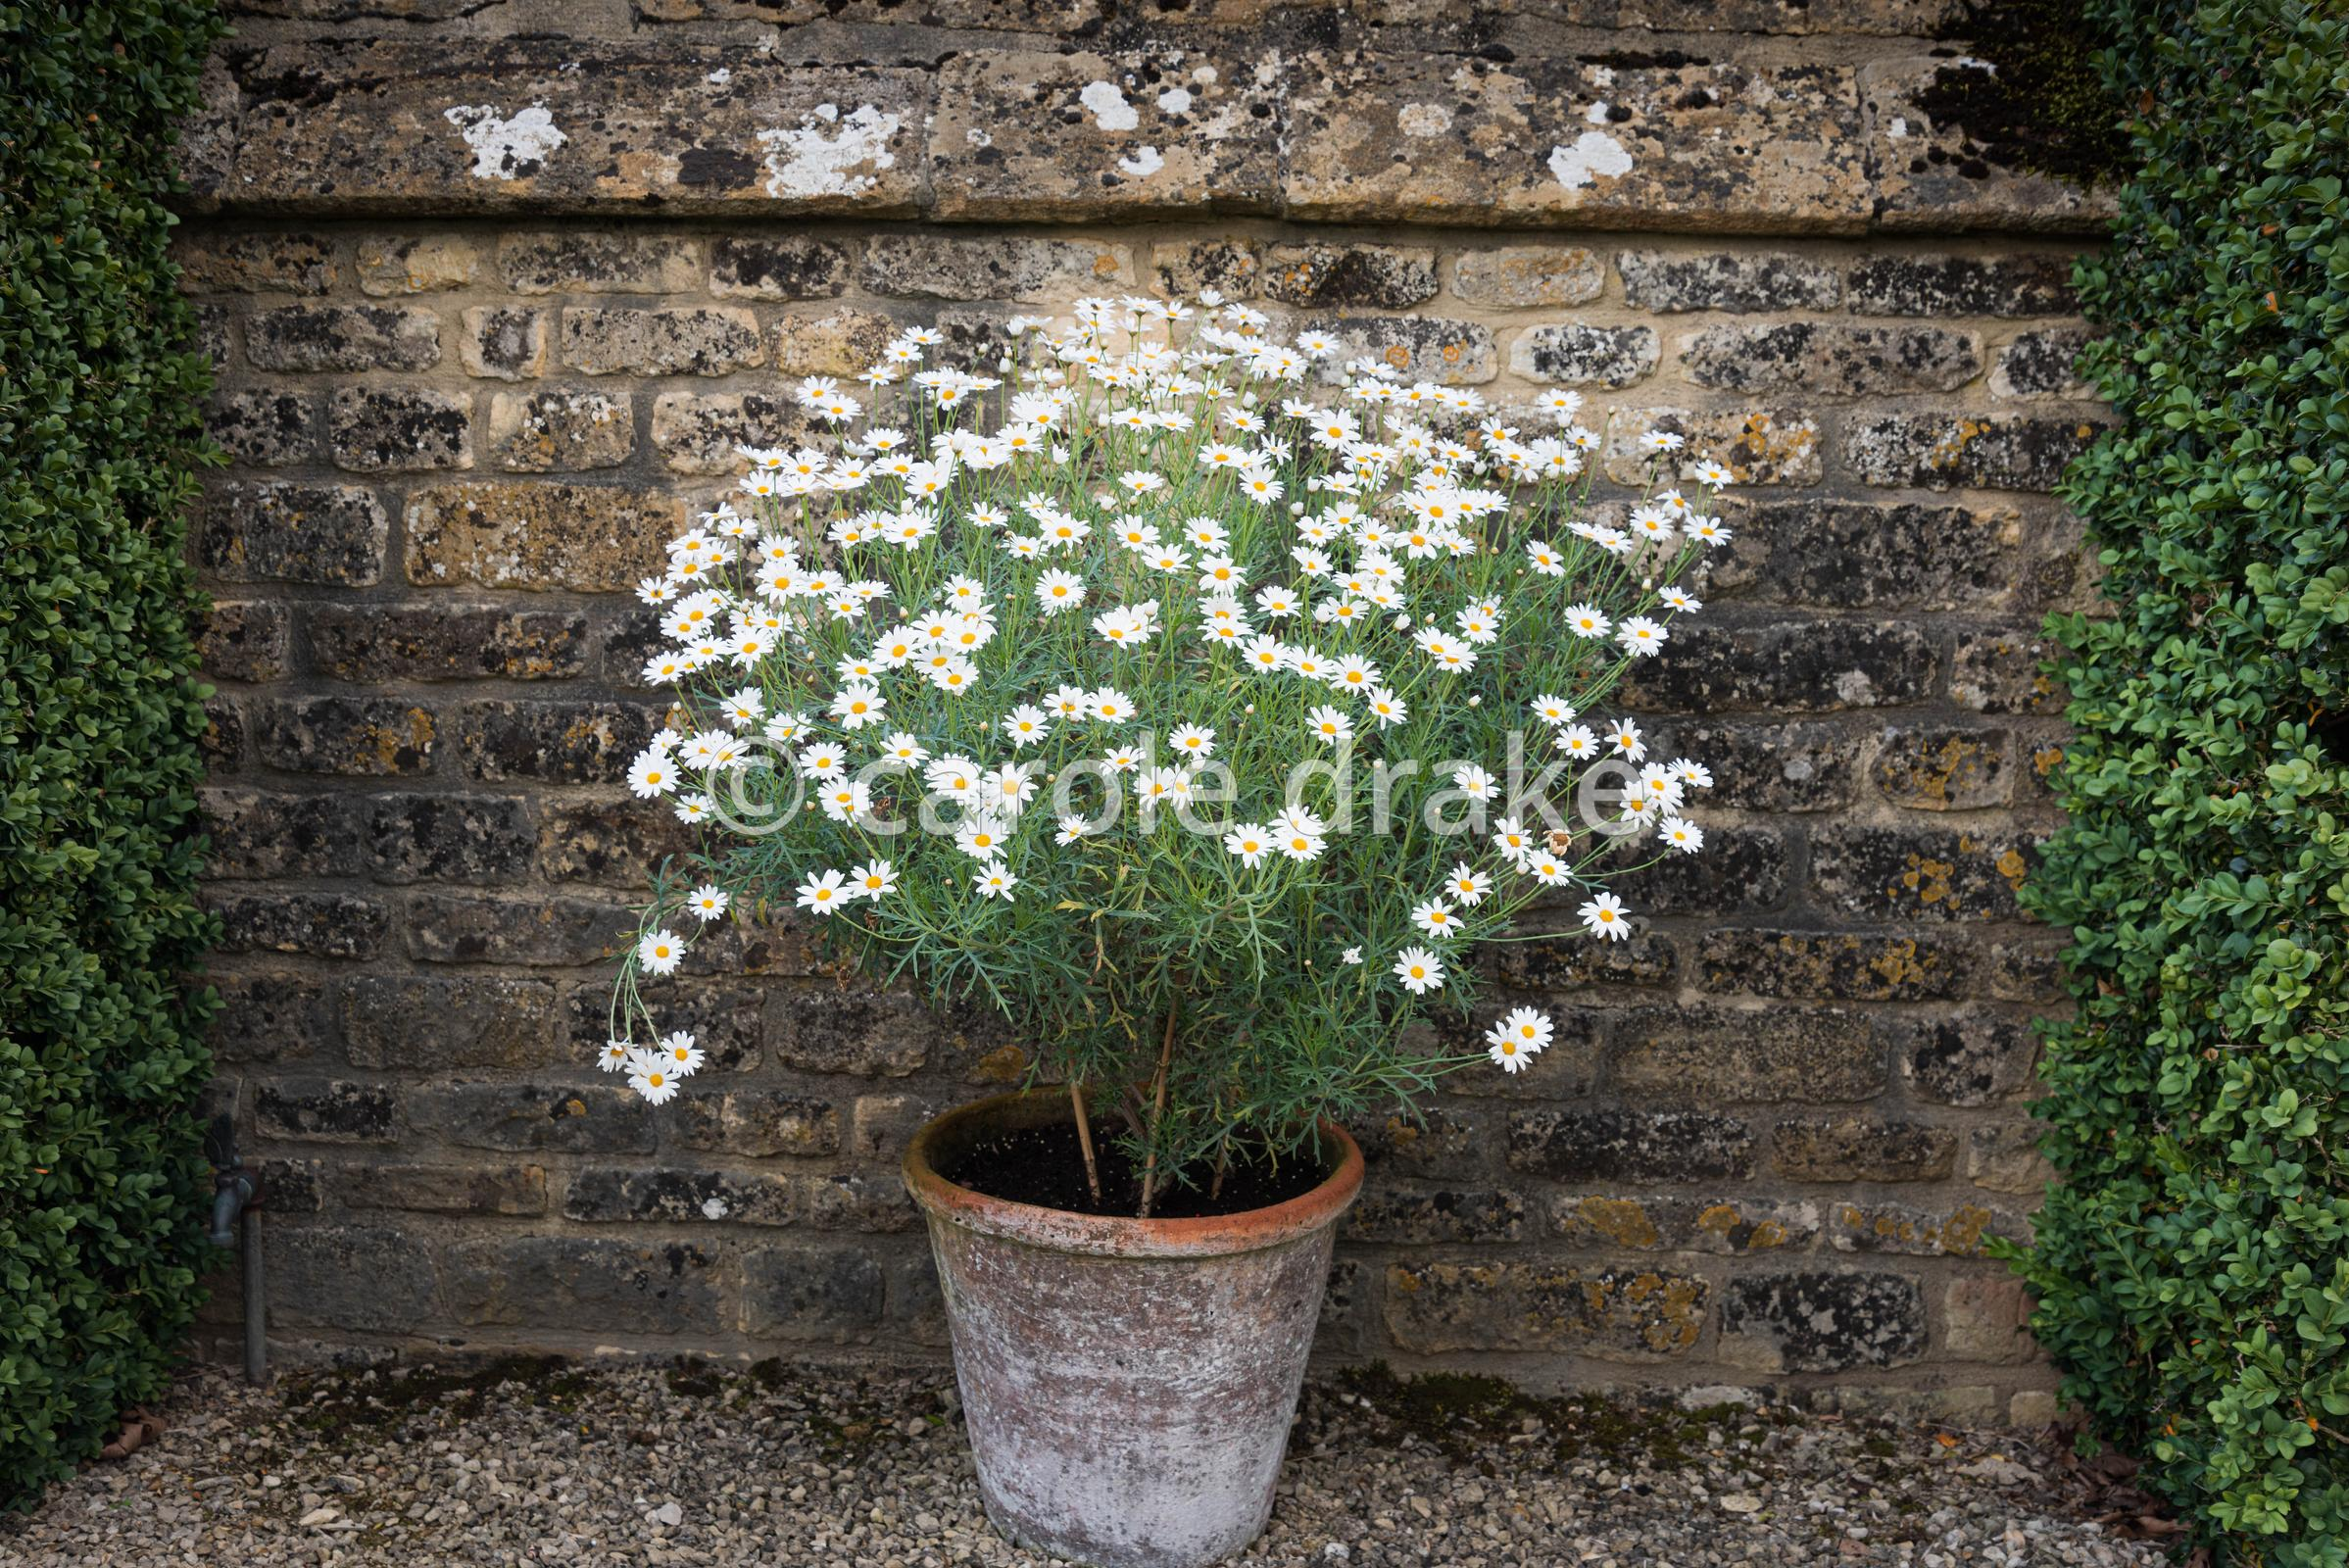 Argyranthemum frutescens in a terracotta pot against a wall at Bourton House, Moreton-in-Marsh in August